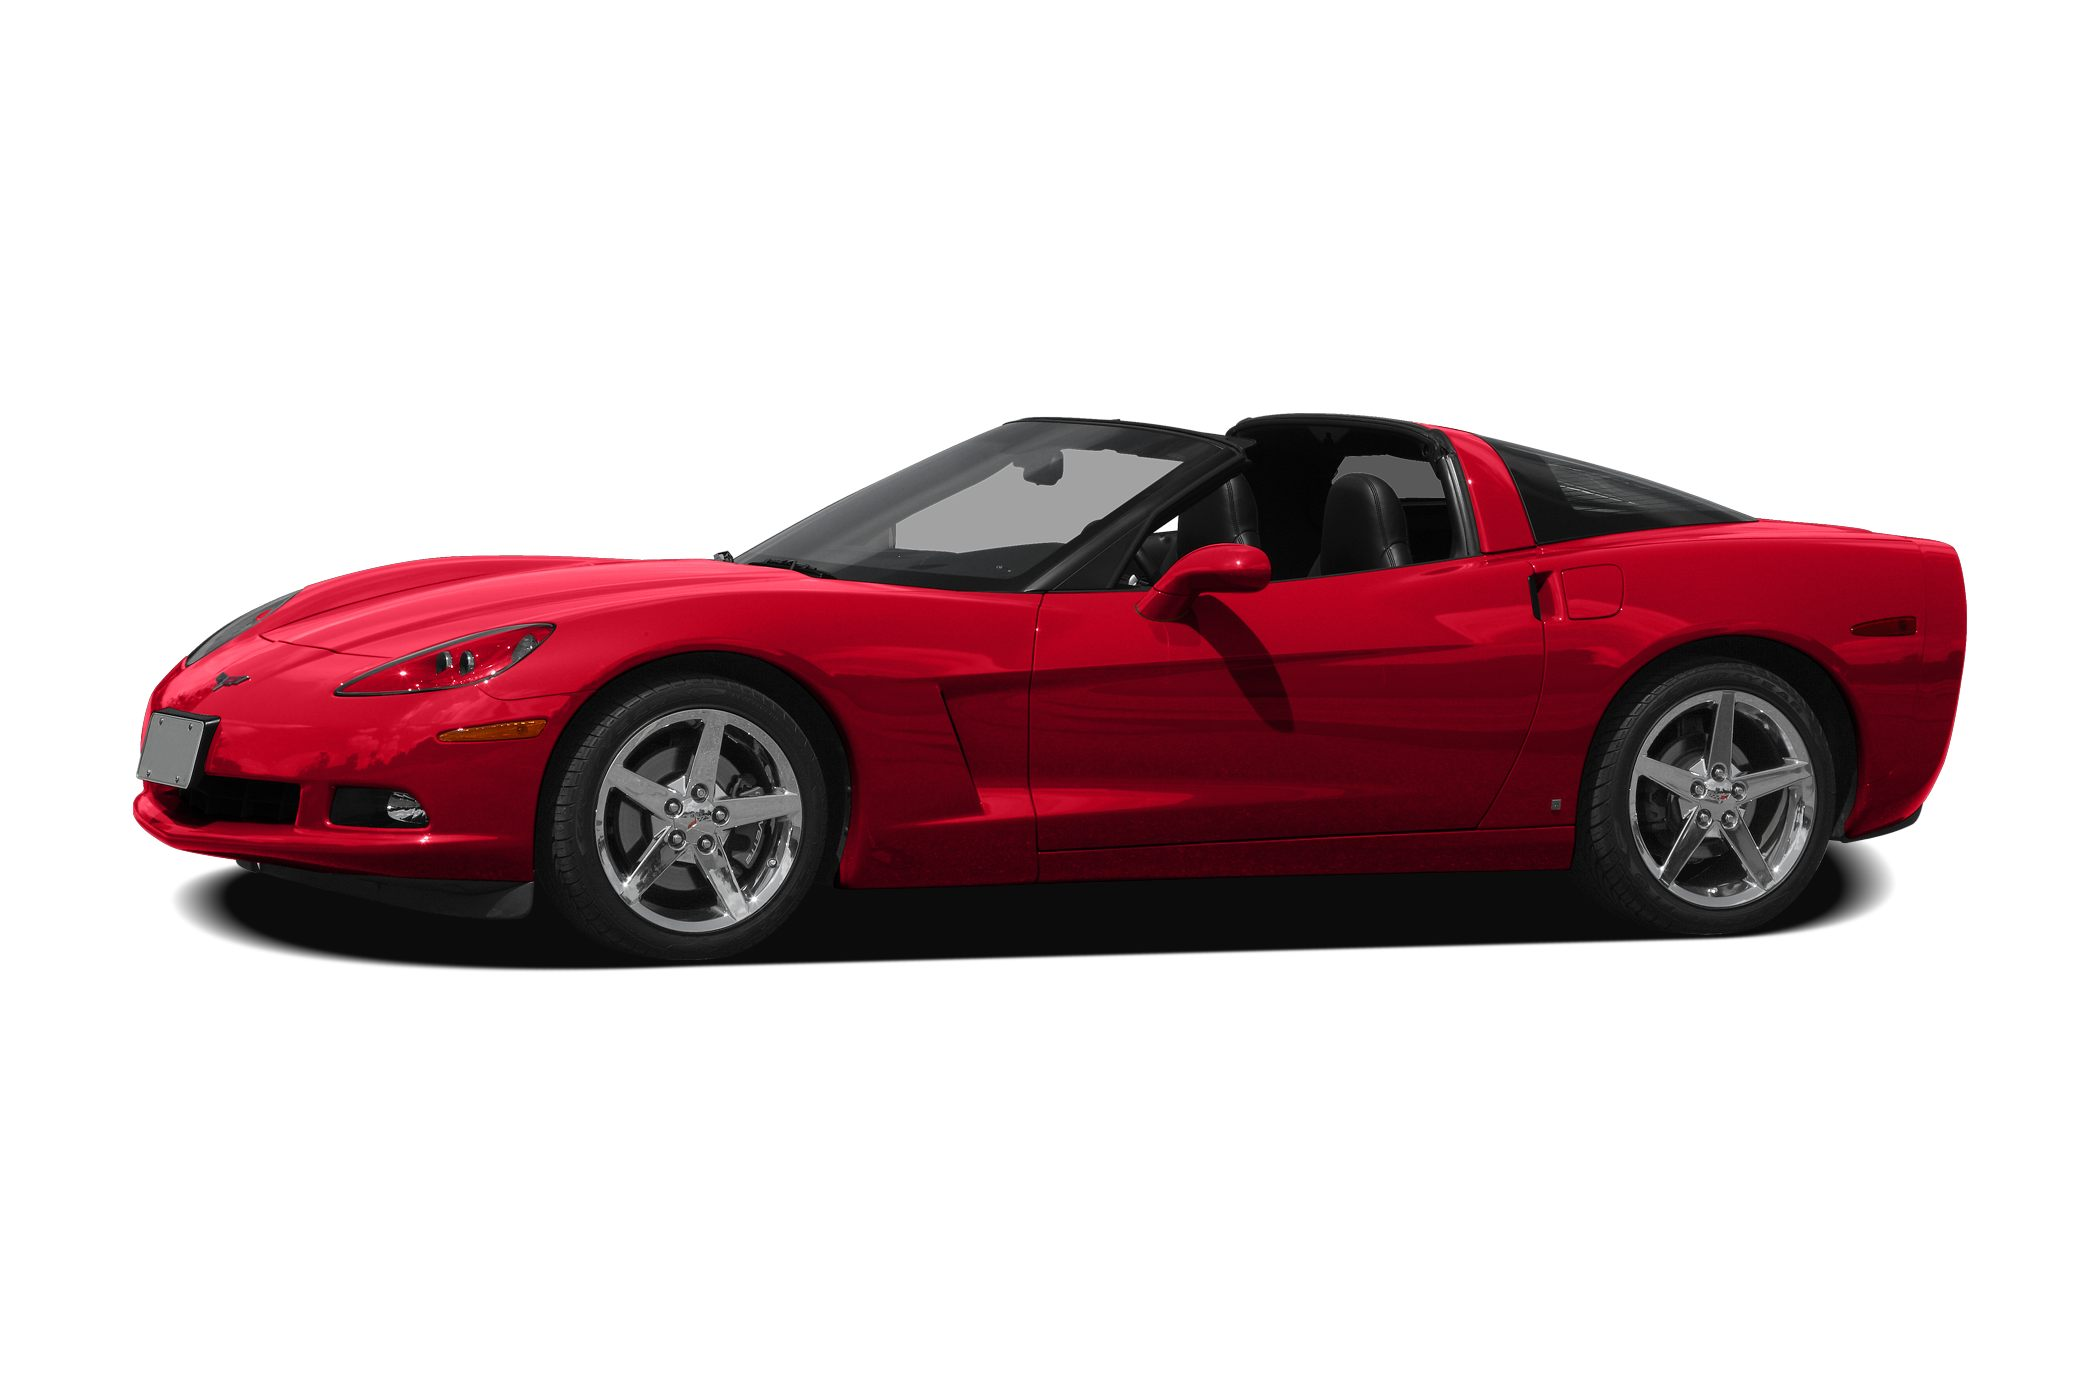 2010 Chevrolet Corvette Coupe for sale in Tulsa for $38,950 with 19,631 miles